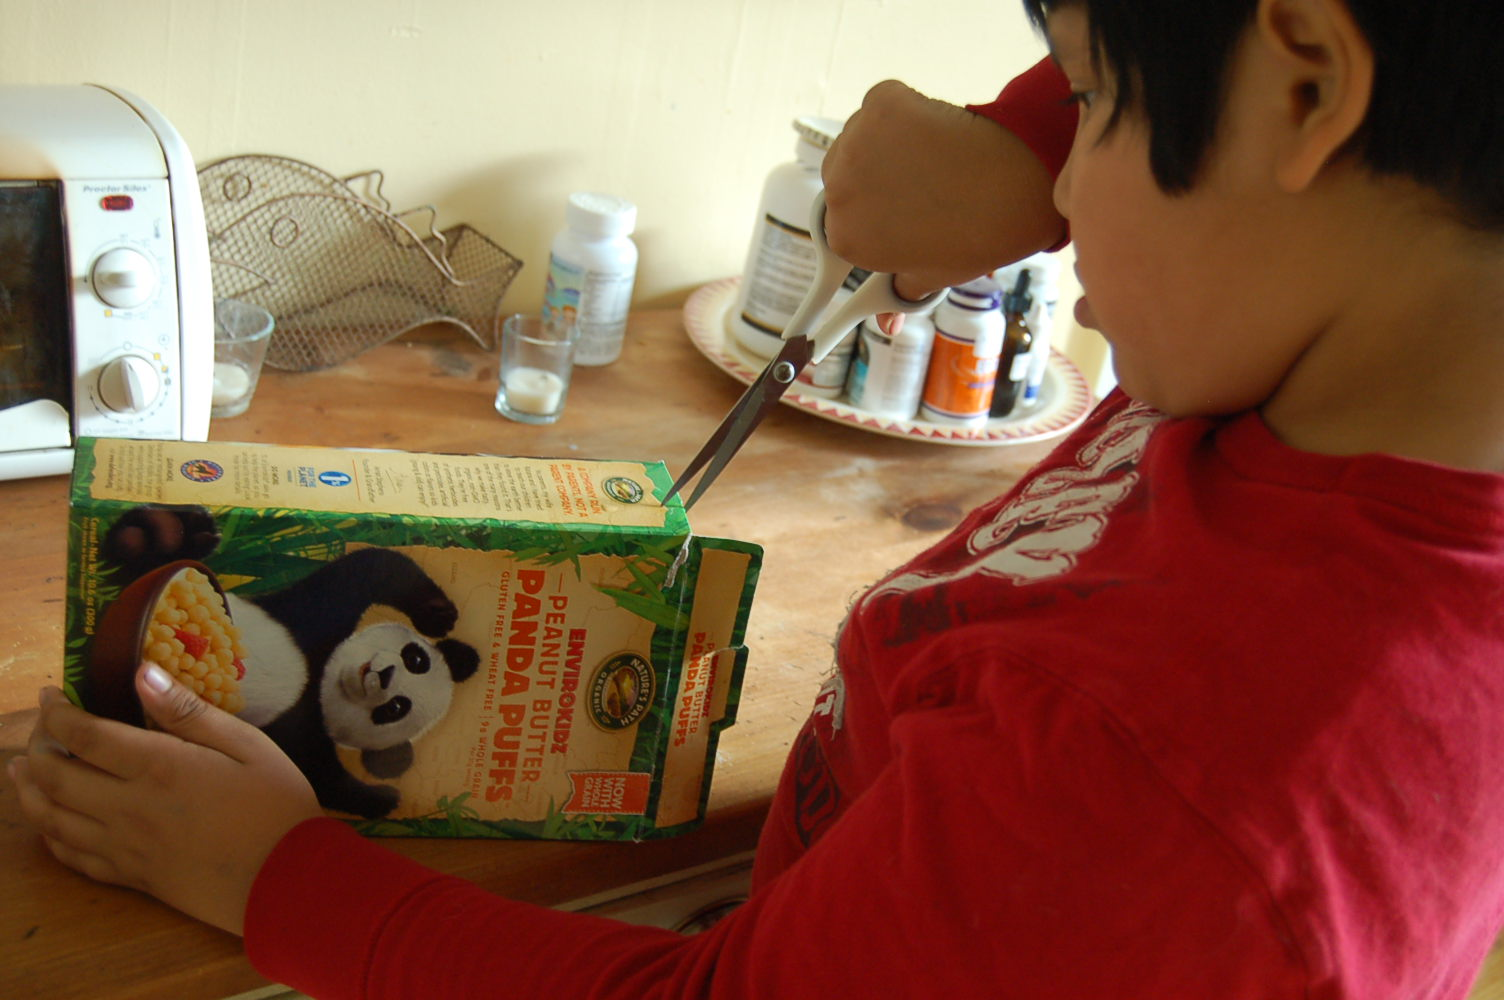 Jav cutting cereal box